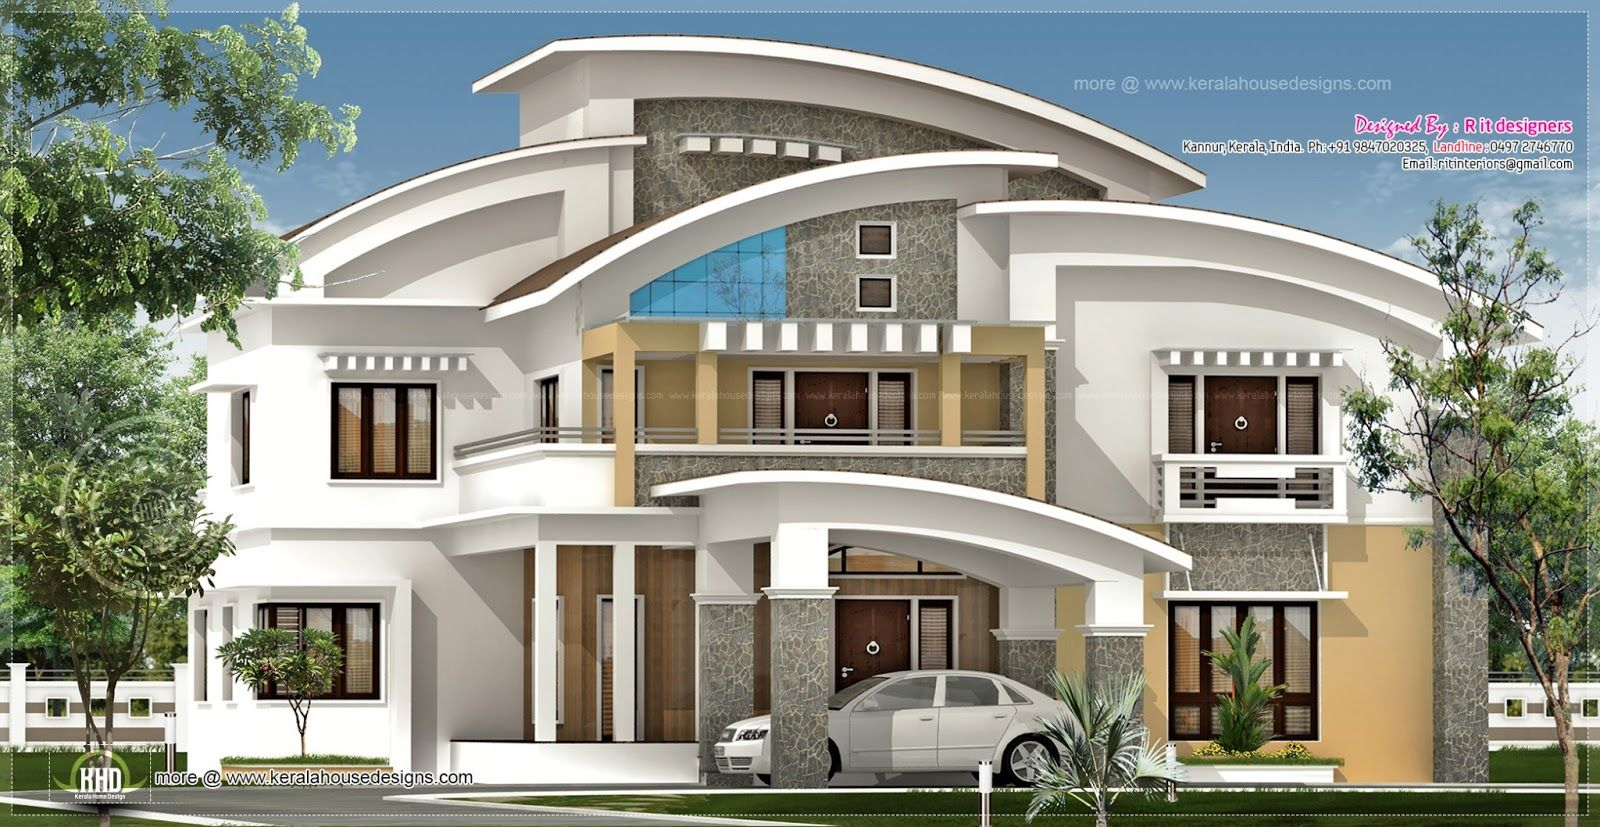 Awesome luxury homes plans 8 french country luxury home for Design exterior of home